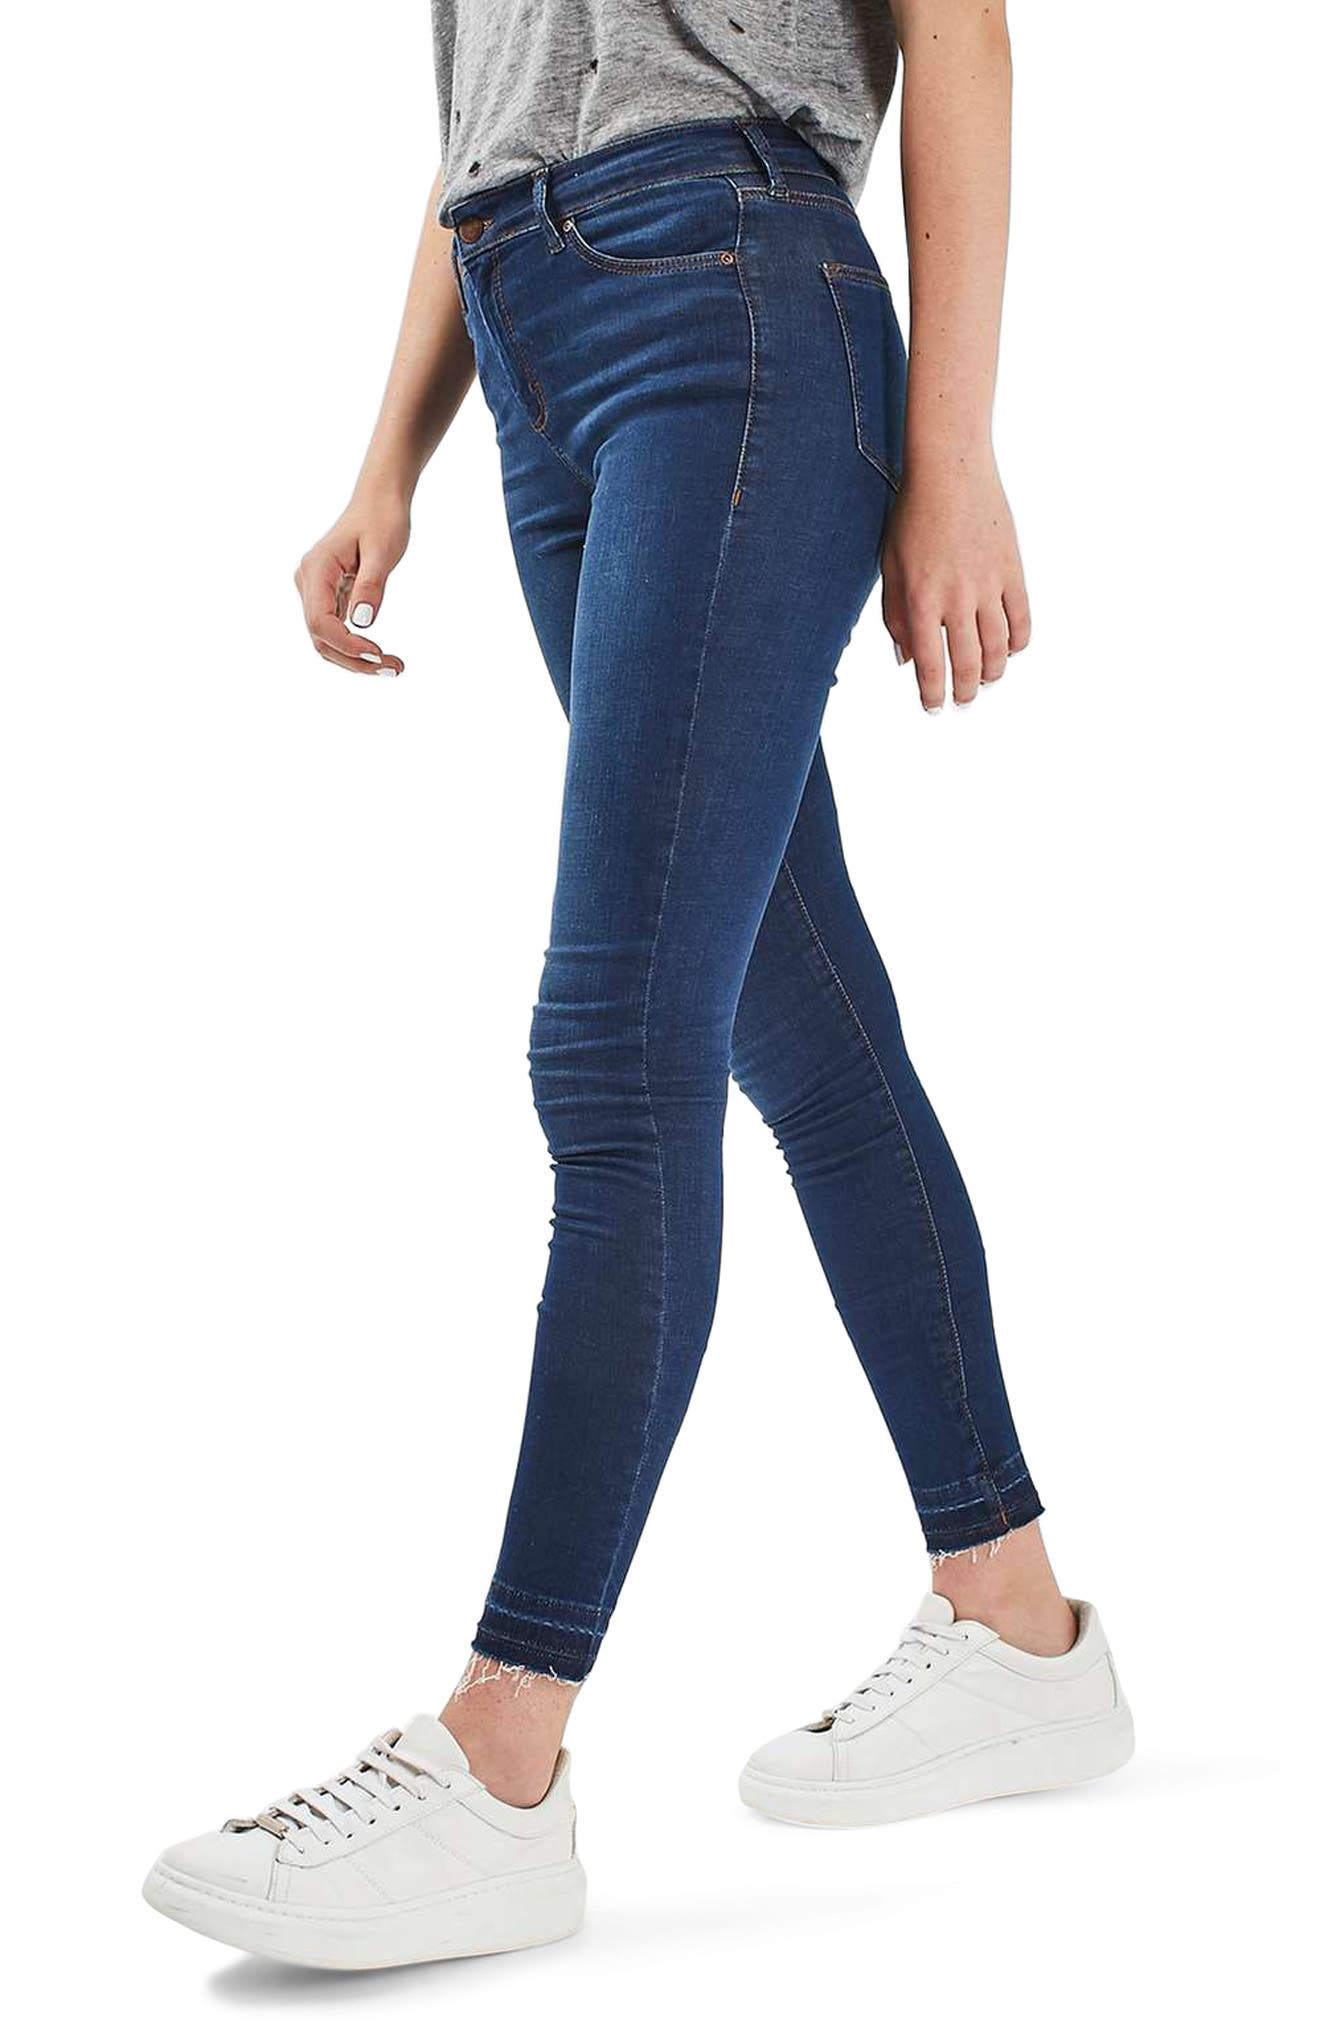 Leigh Release Hem Skinny Jeans,                         Main,                         color, 401